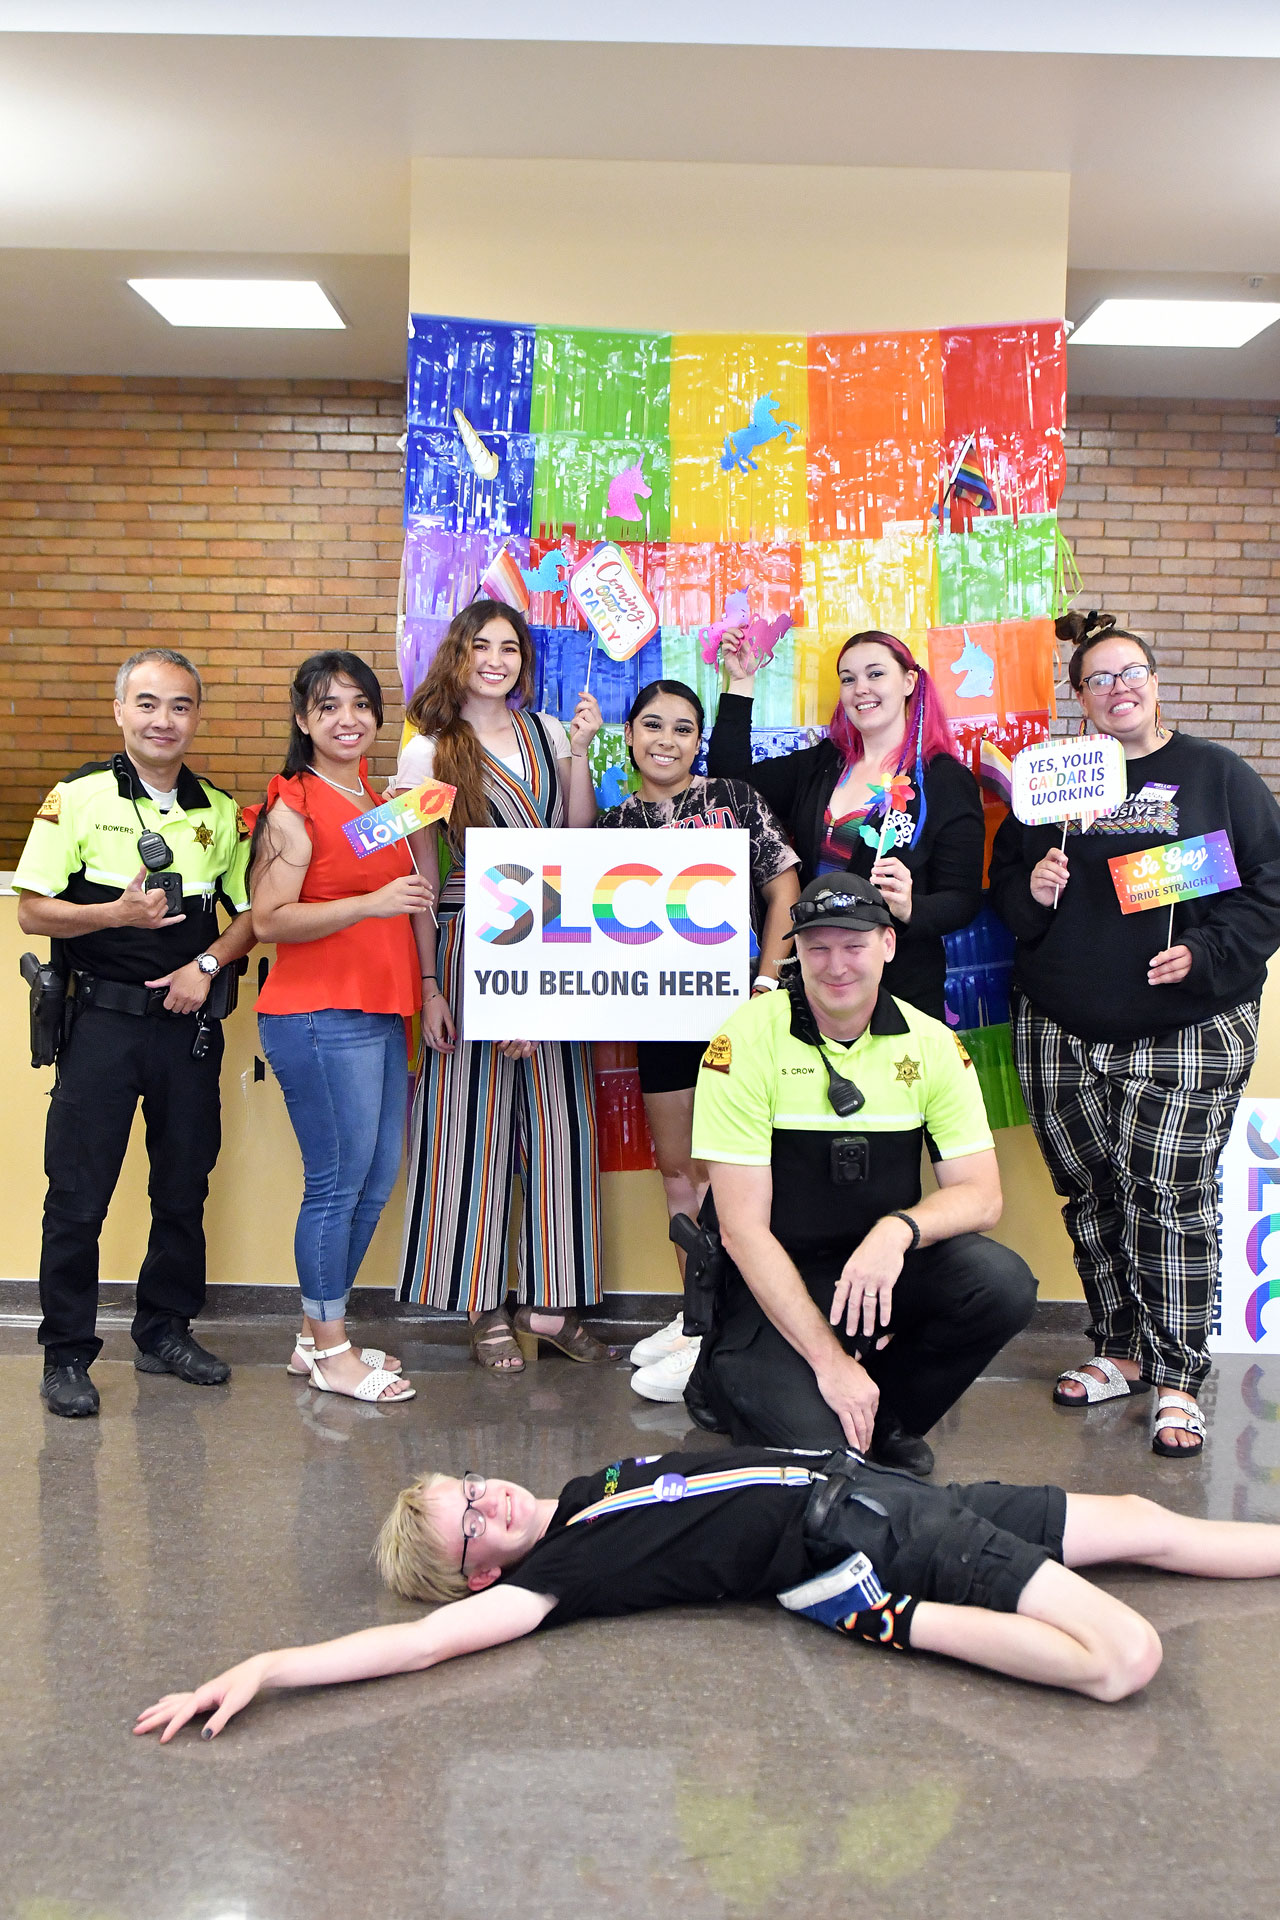 Students and officers pose for a photo